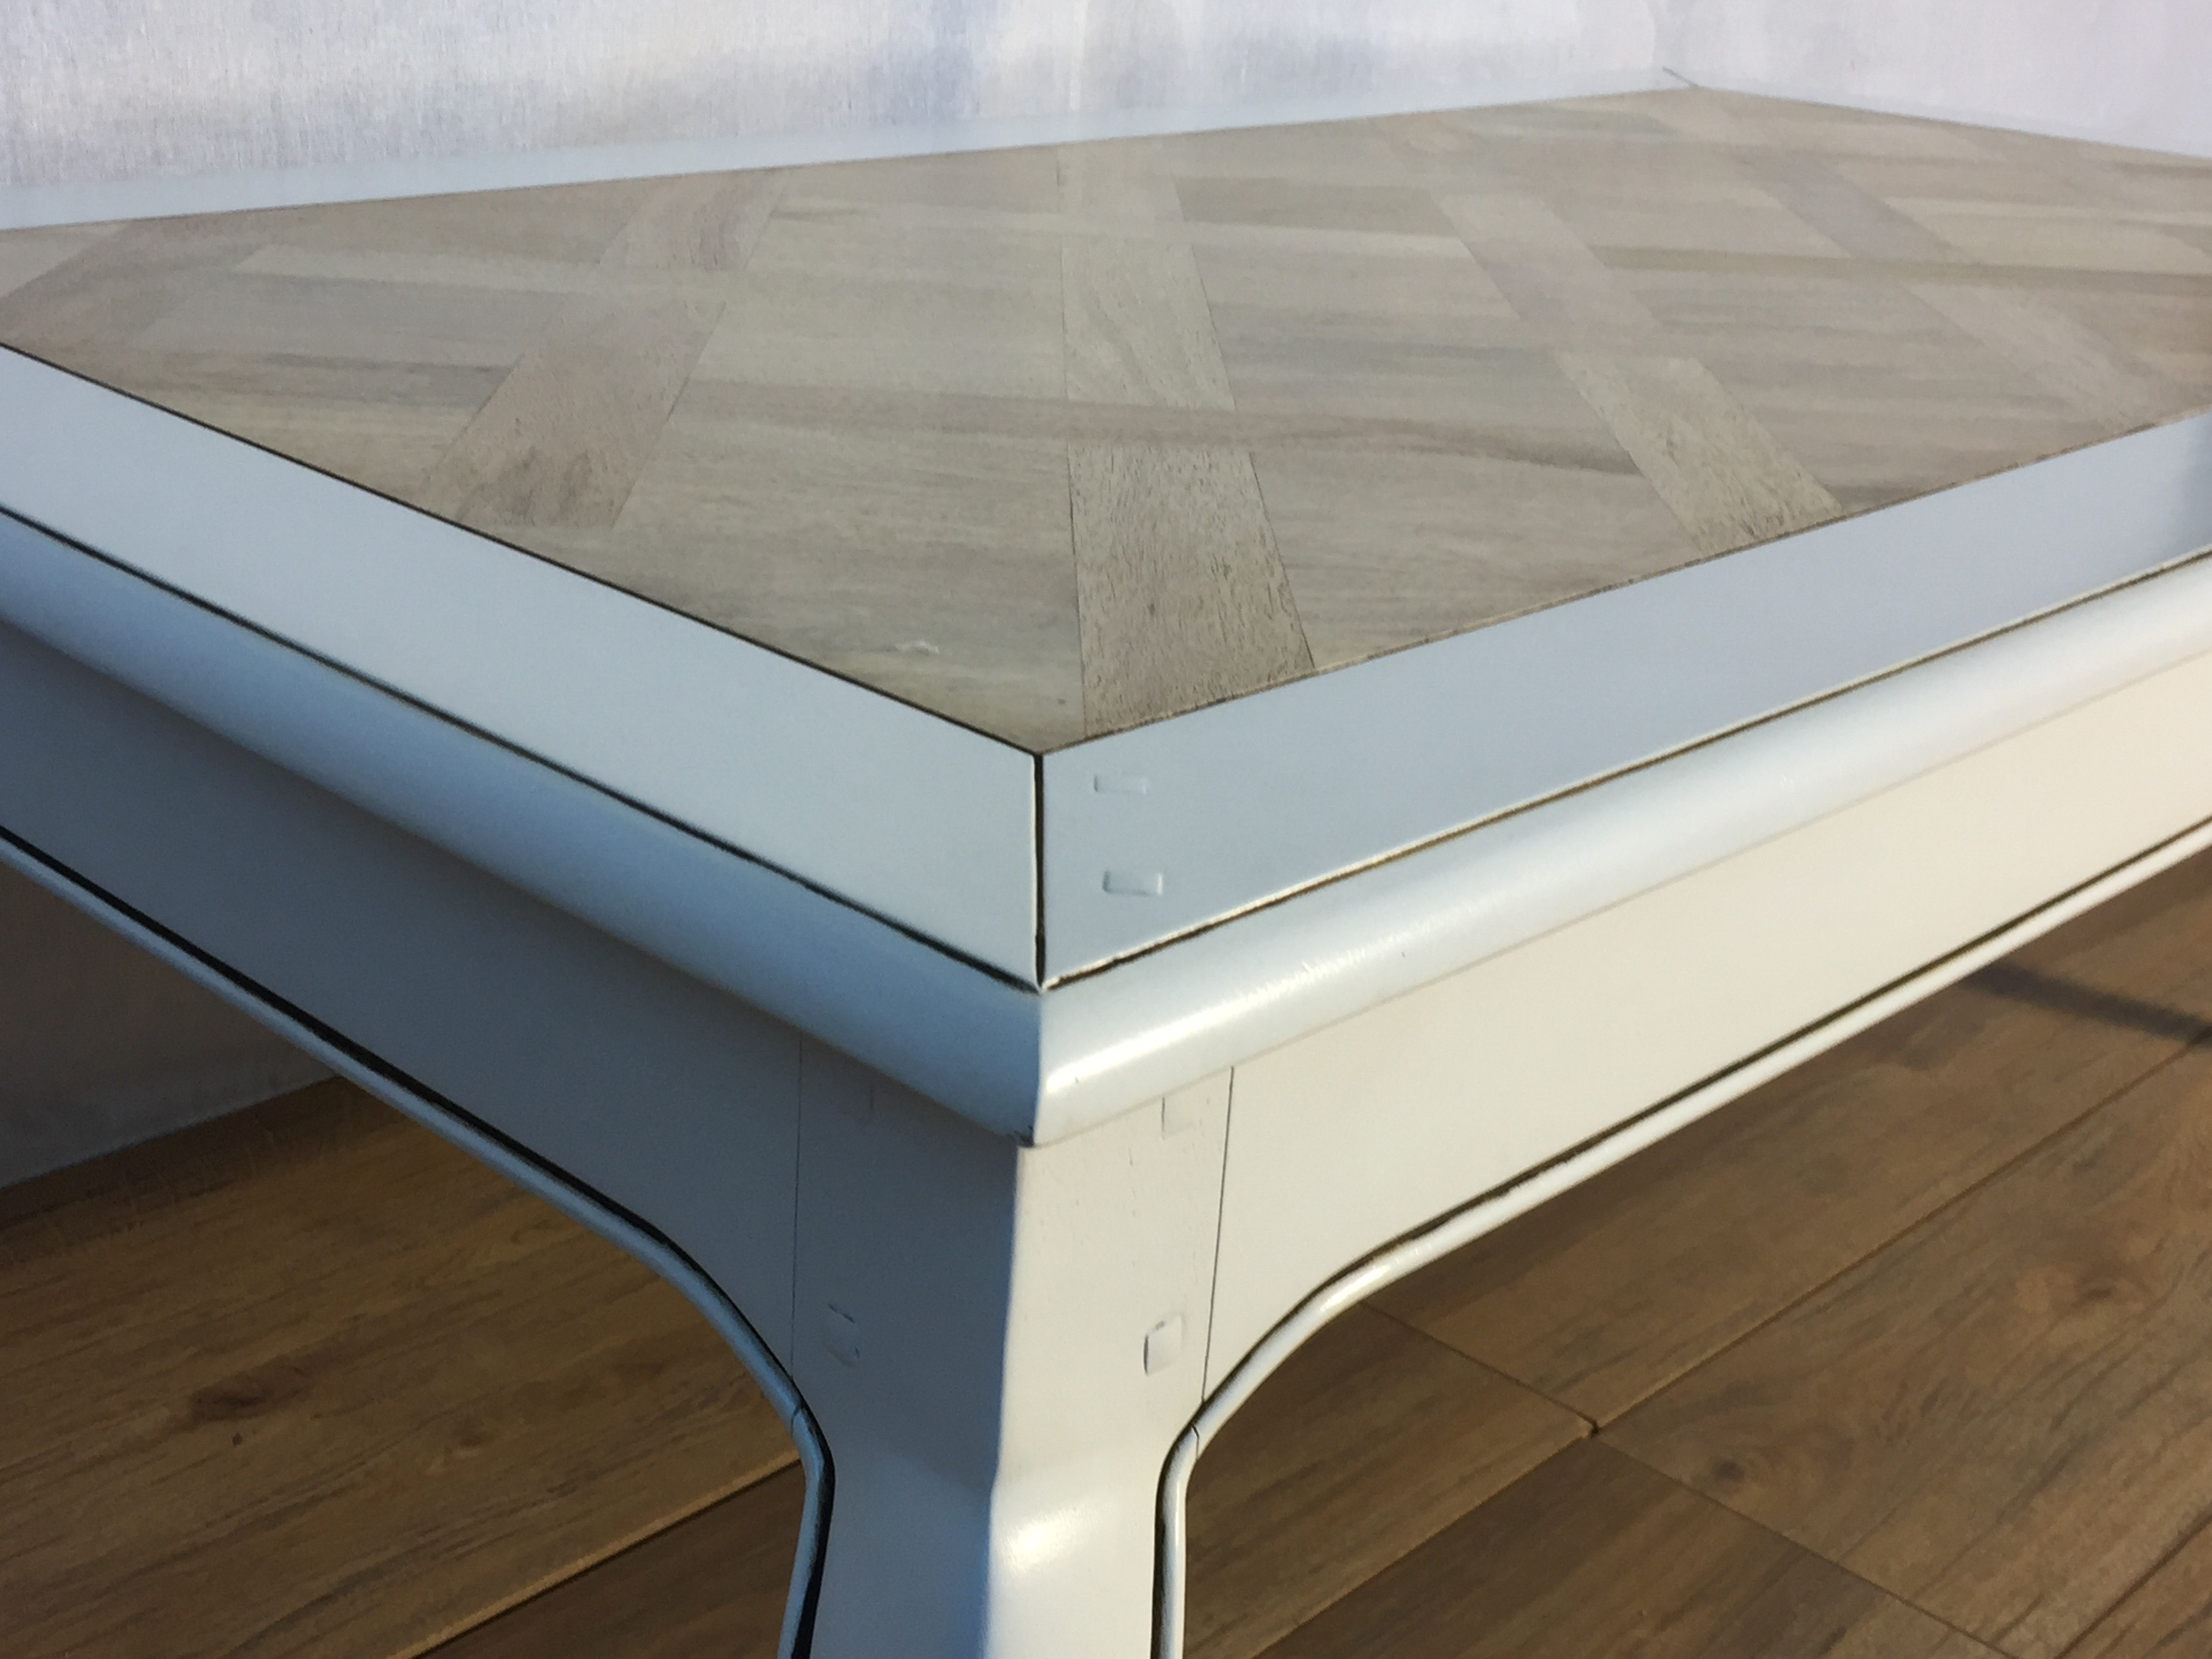 Classic Provincial Style Not So Shabby Chic Coffee Table (Lw9 with regard to Limewash Coffee Tables (Image 4 of 30)